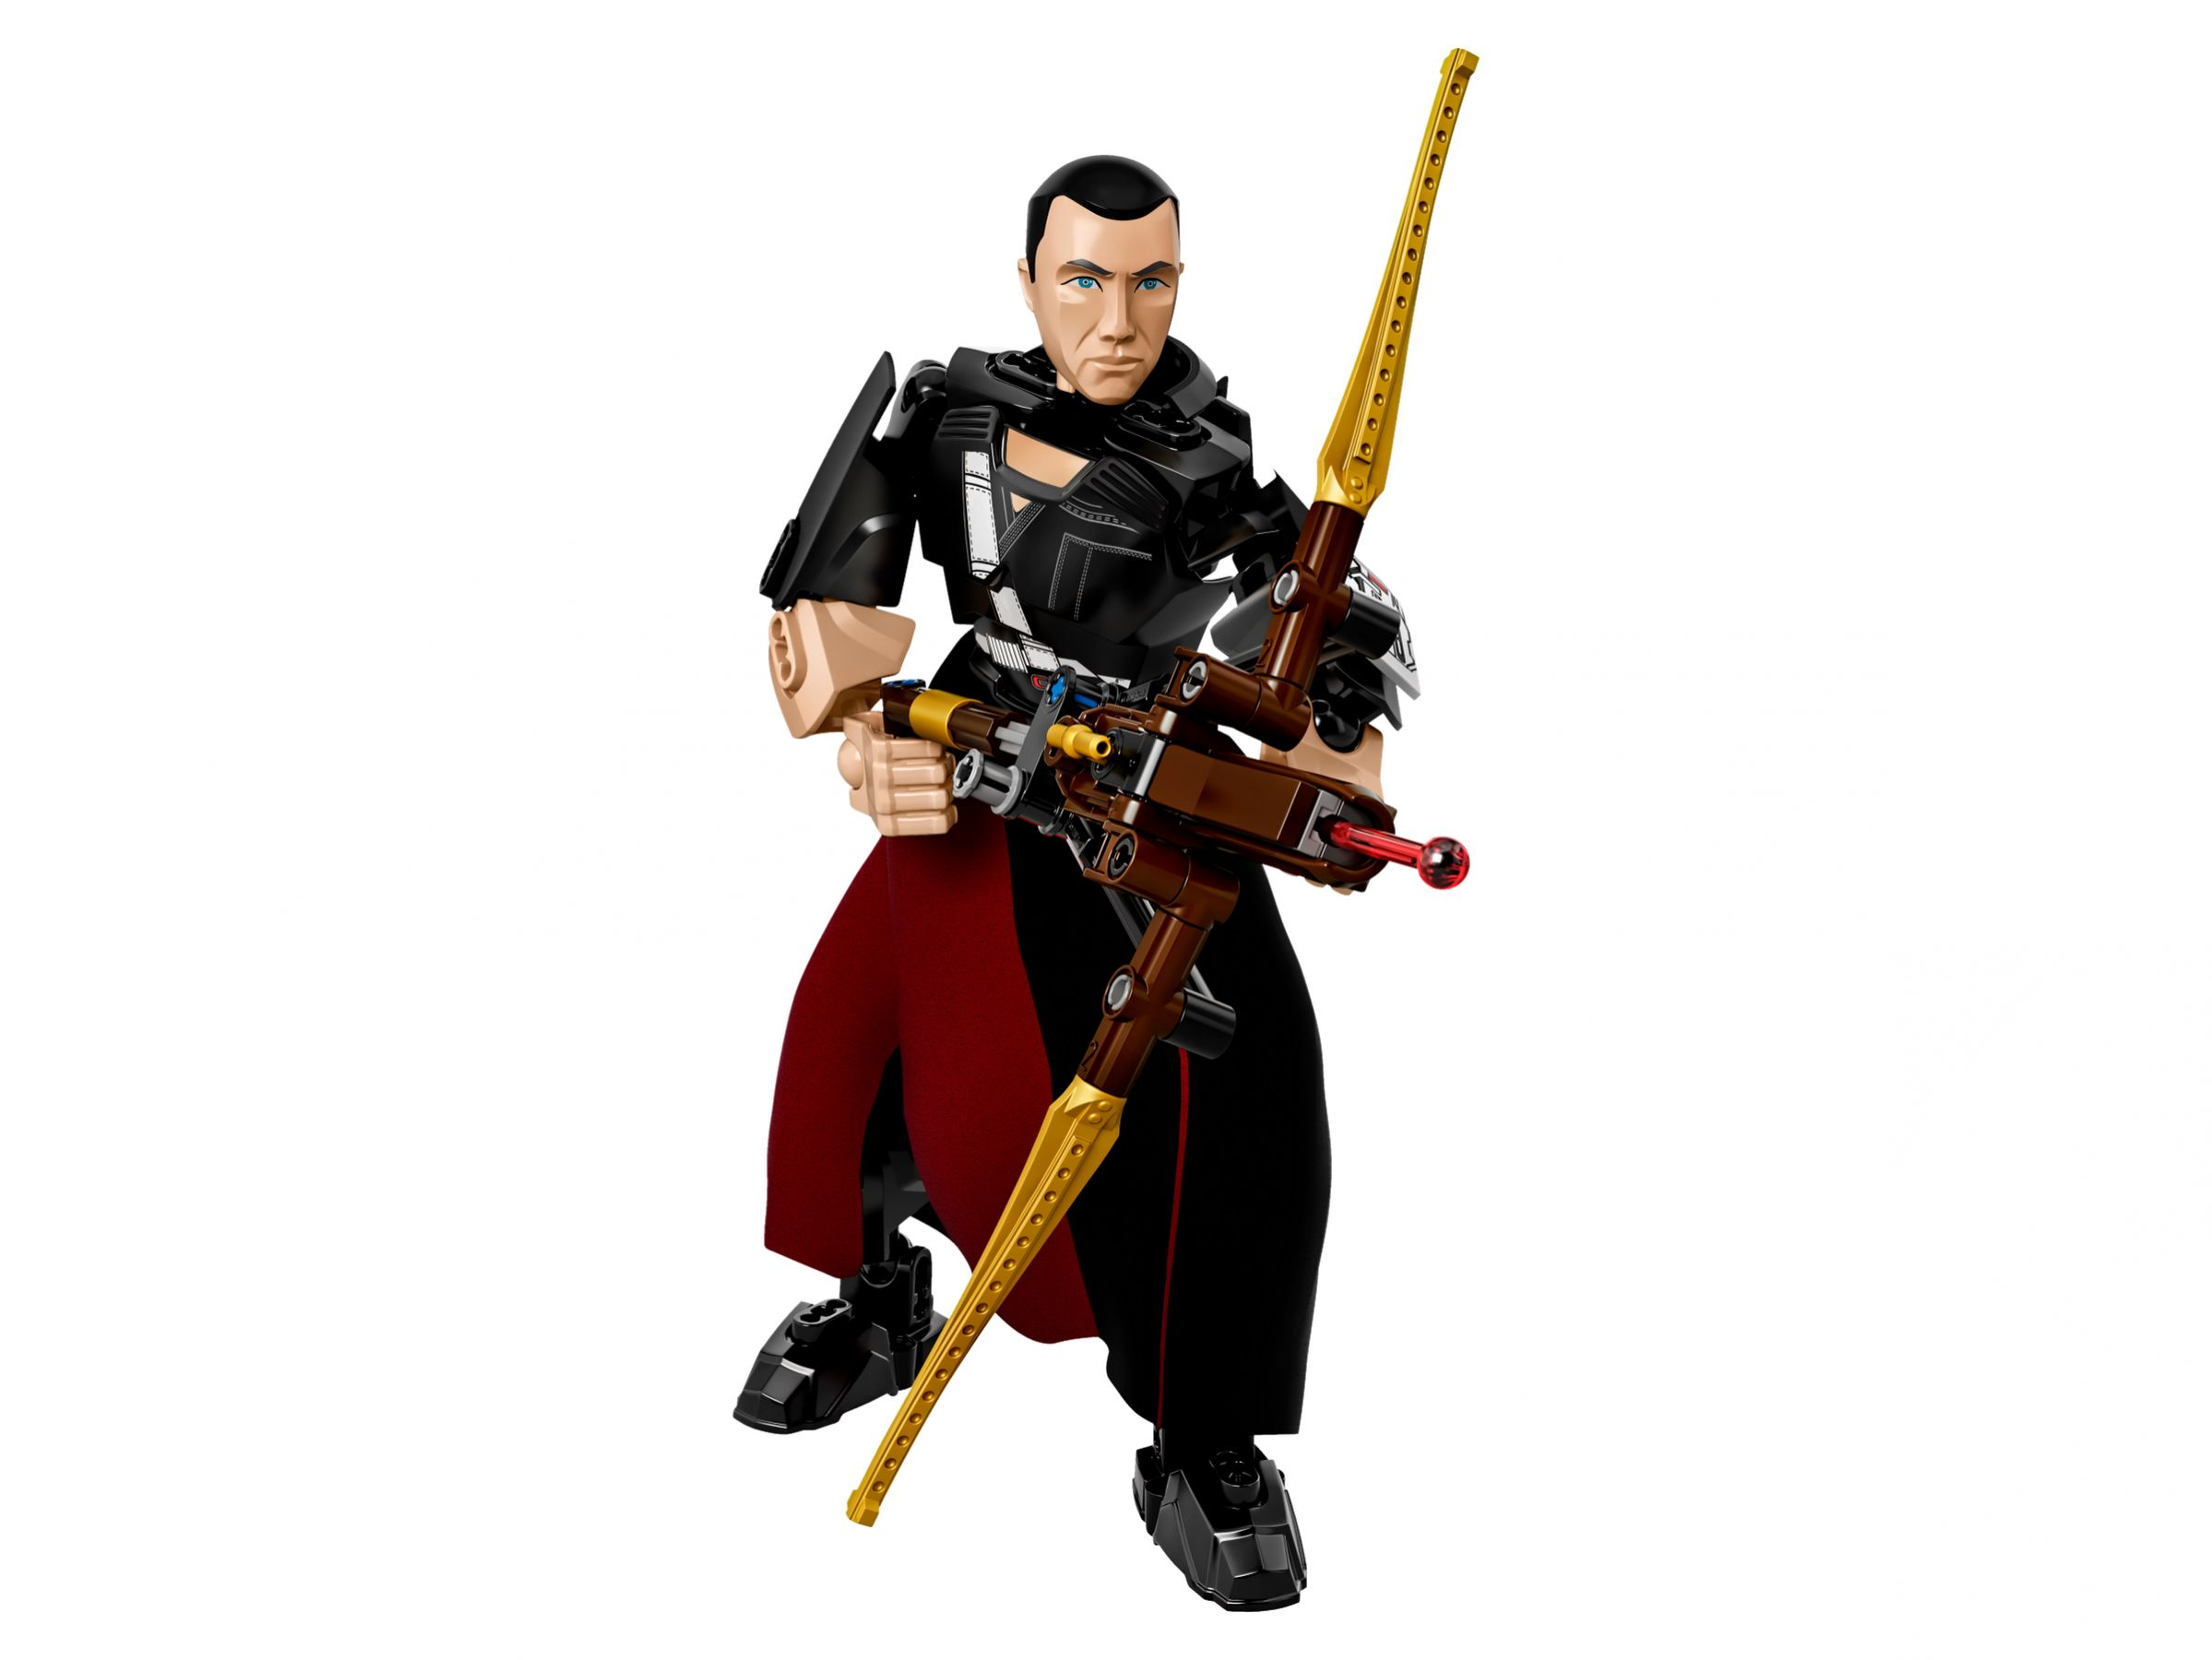 LEGO Star Wars Buildable Figures 75524 Chirrut Îmwe™